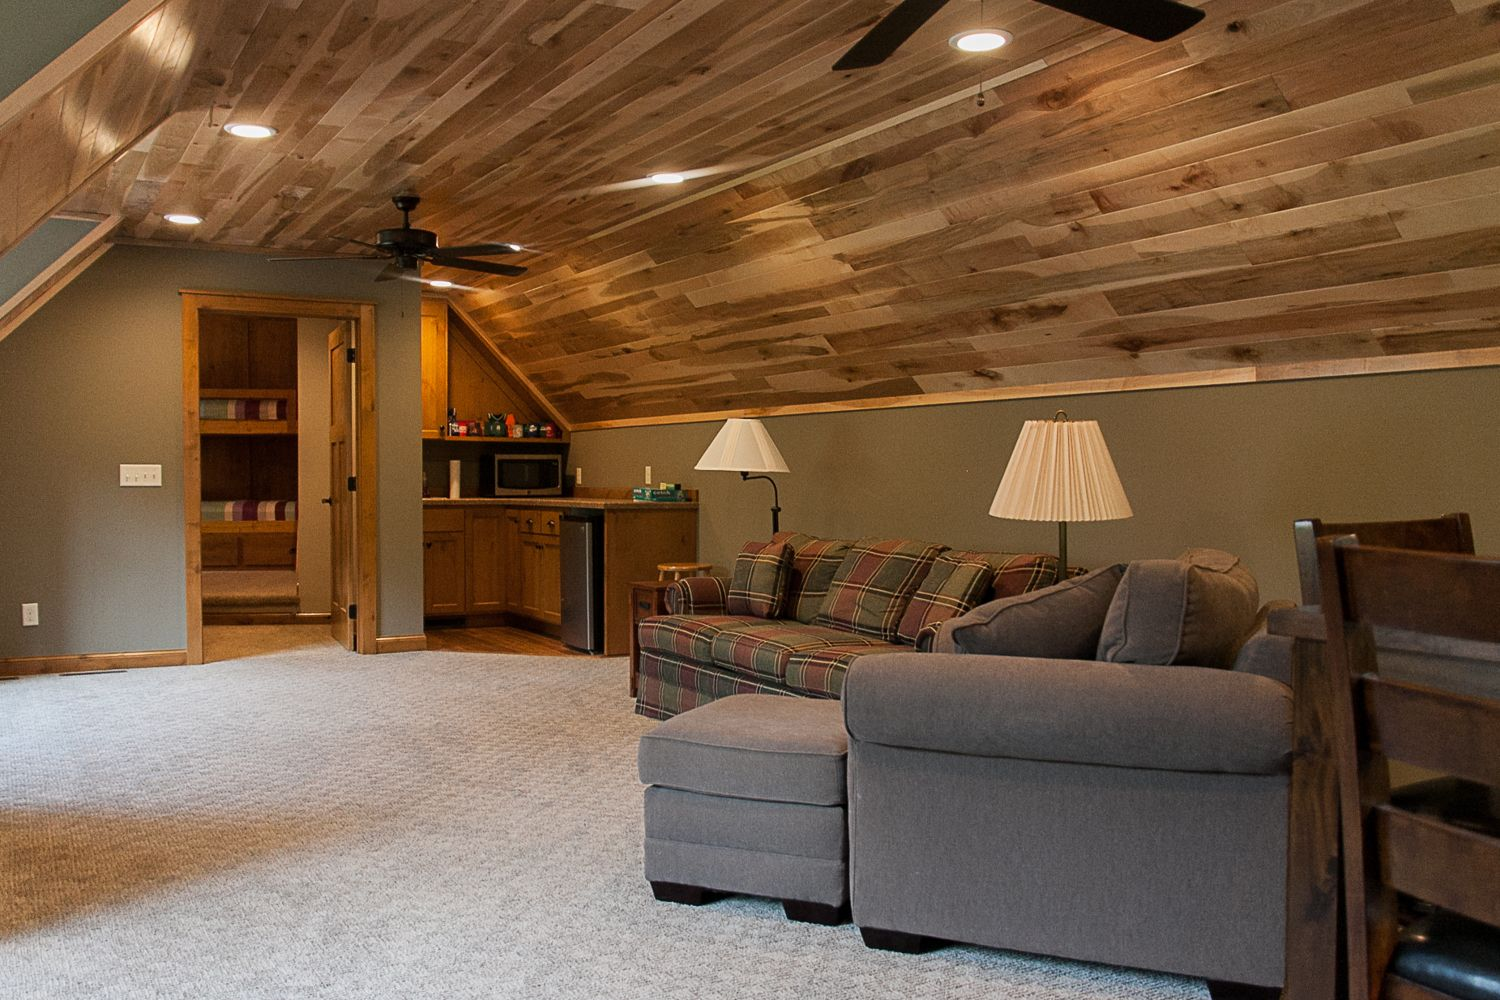 hickory ceiling bonus room kid room above garage in a